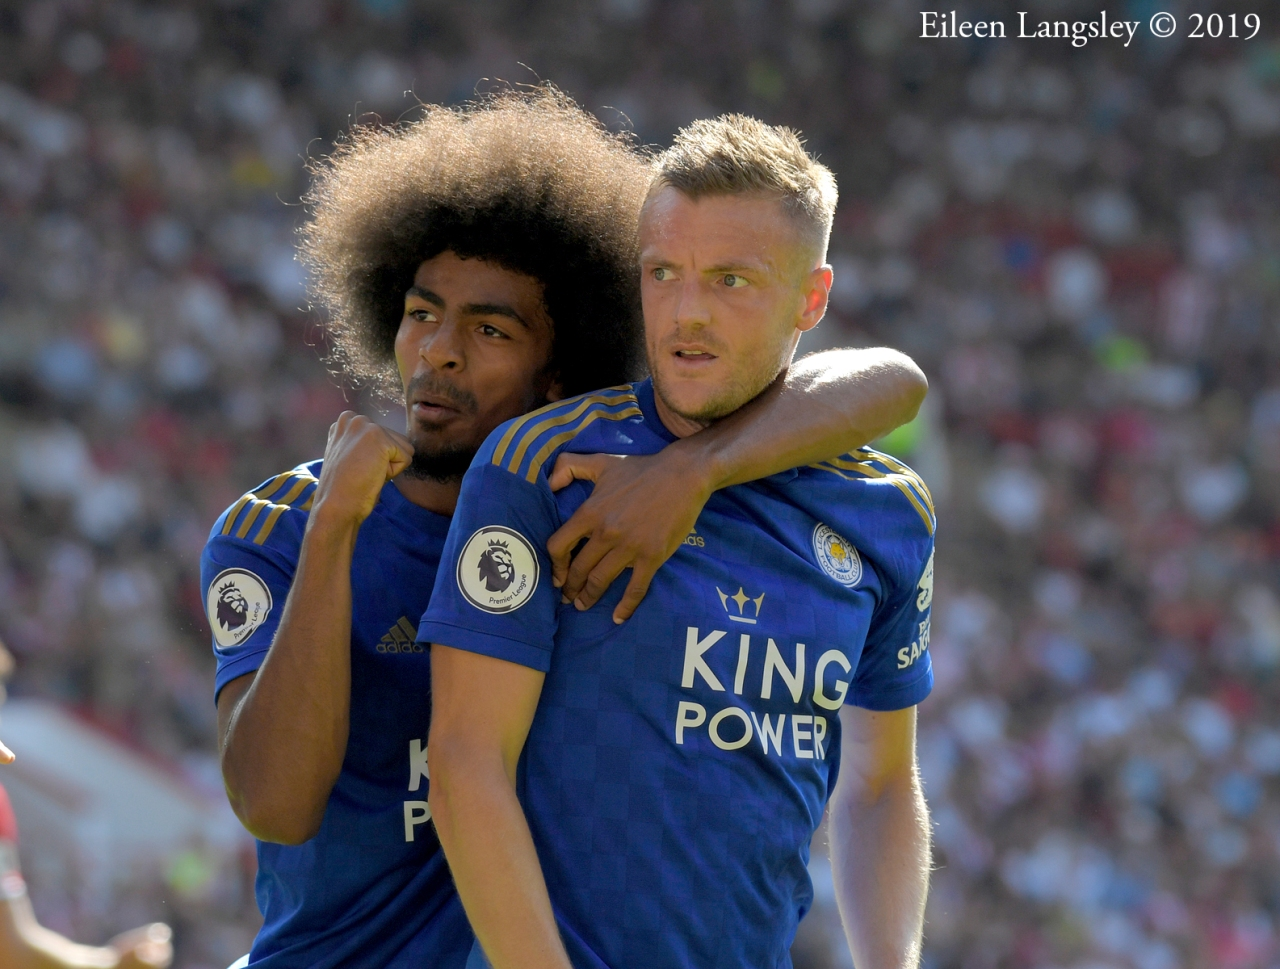 Protected: The English Premier League match between Sheffield United and Leicester City